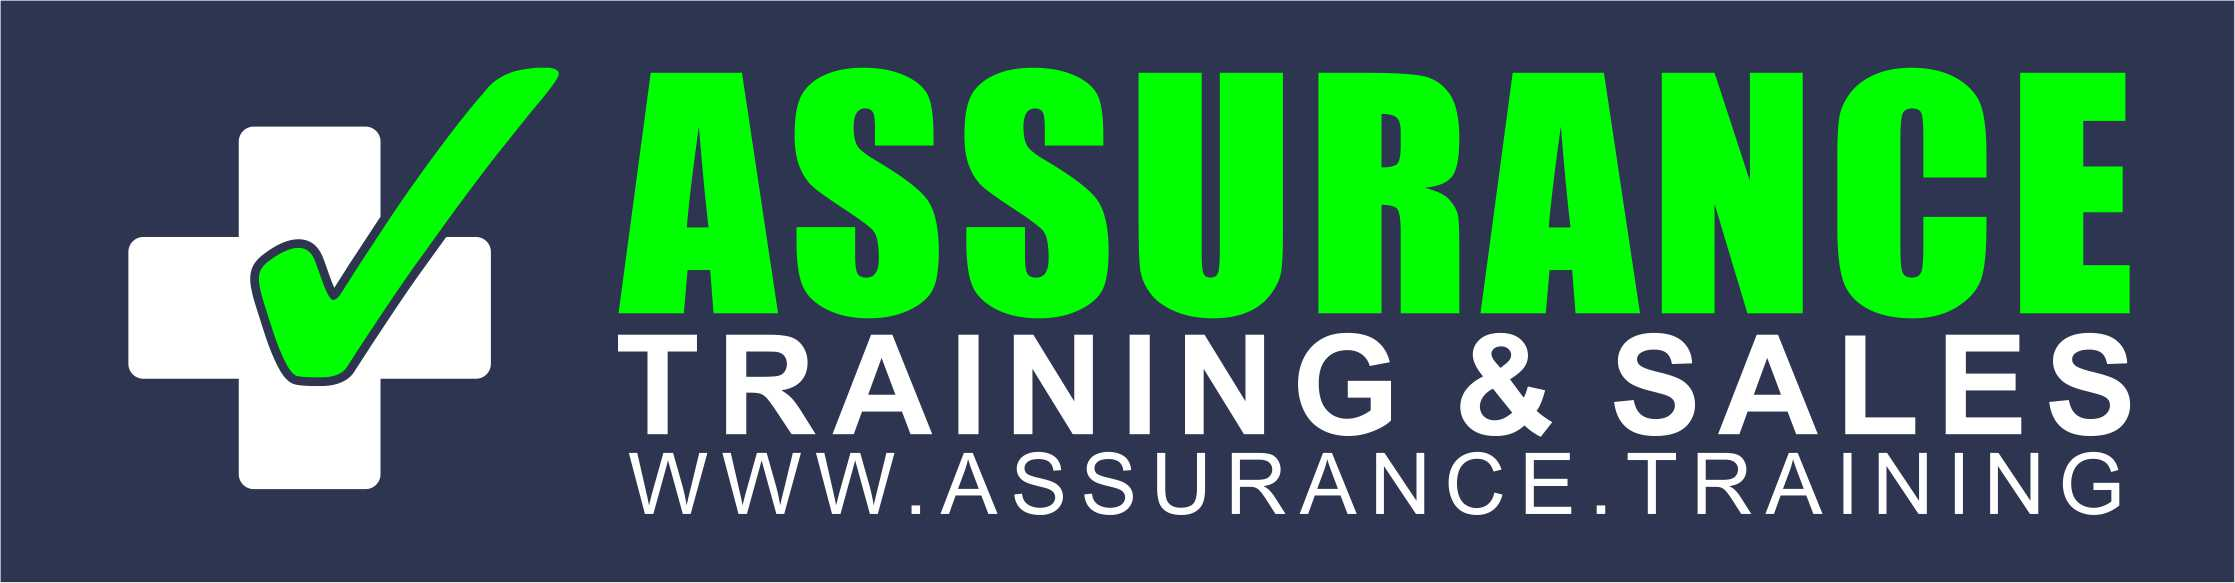 SEK Regional LTD PTY T/A Assurance Training & Sales